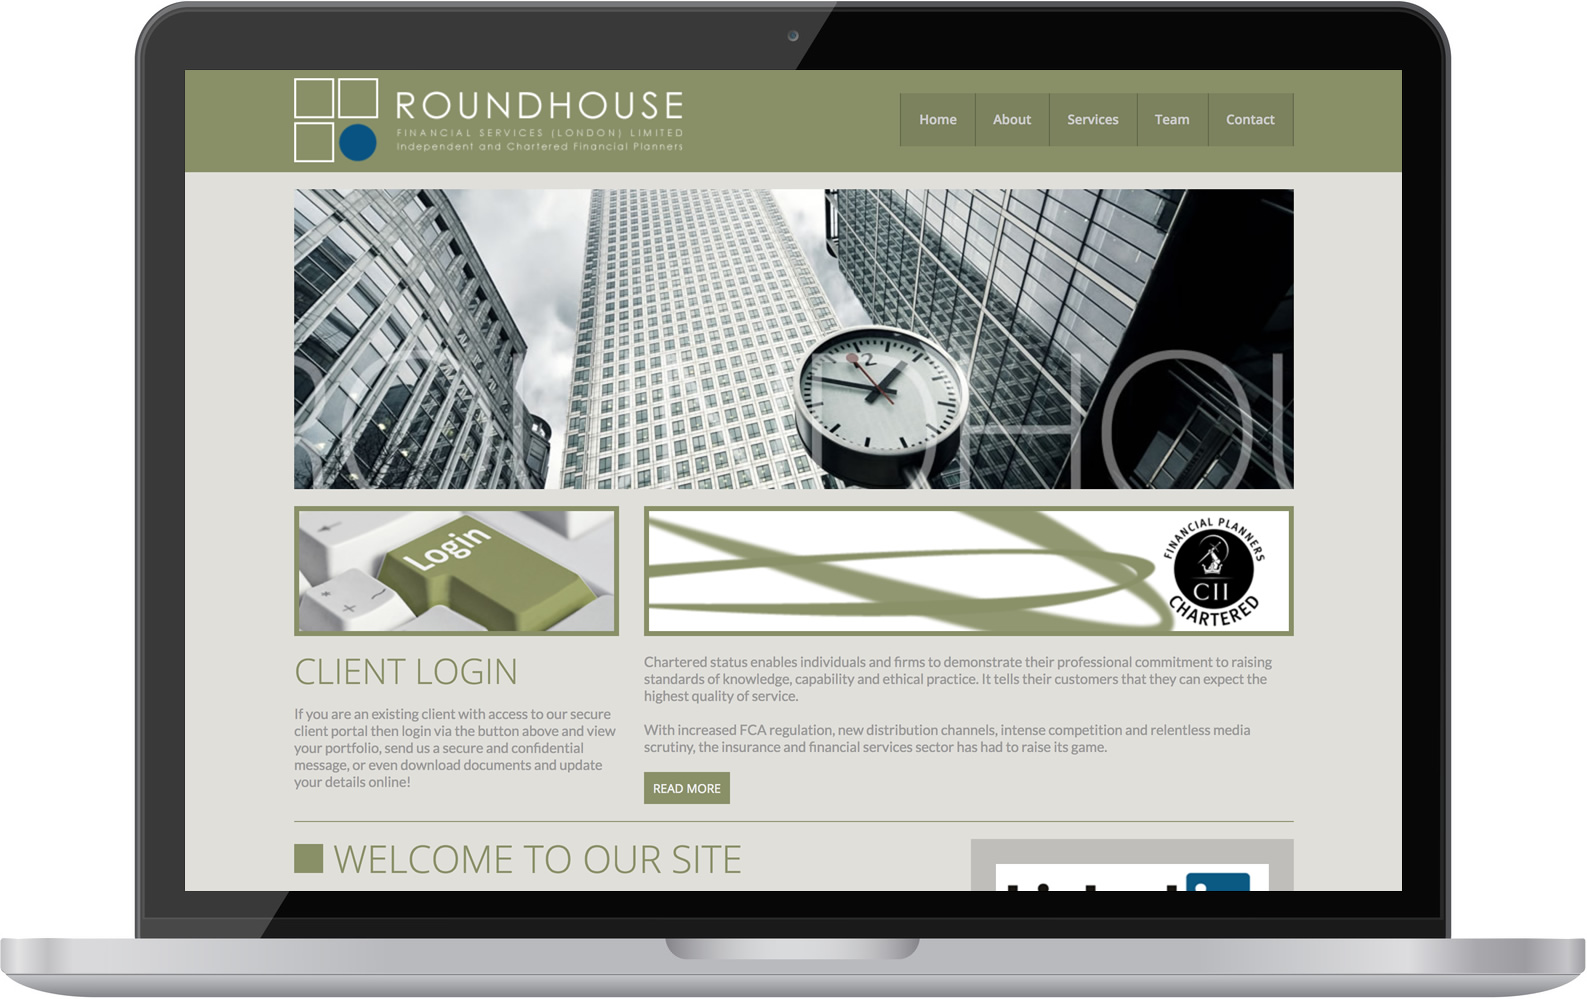 Roundhouse Financial Services